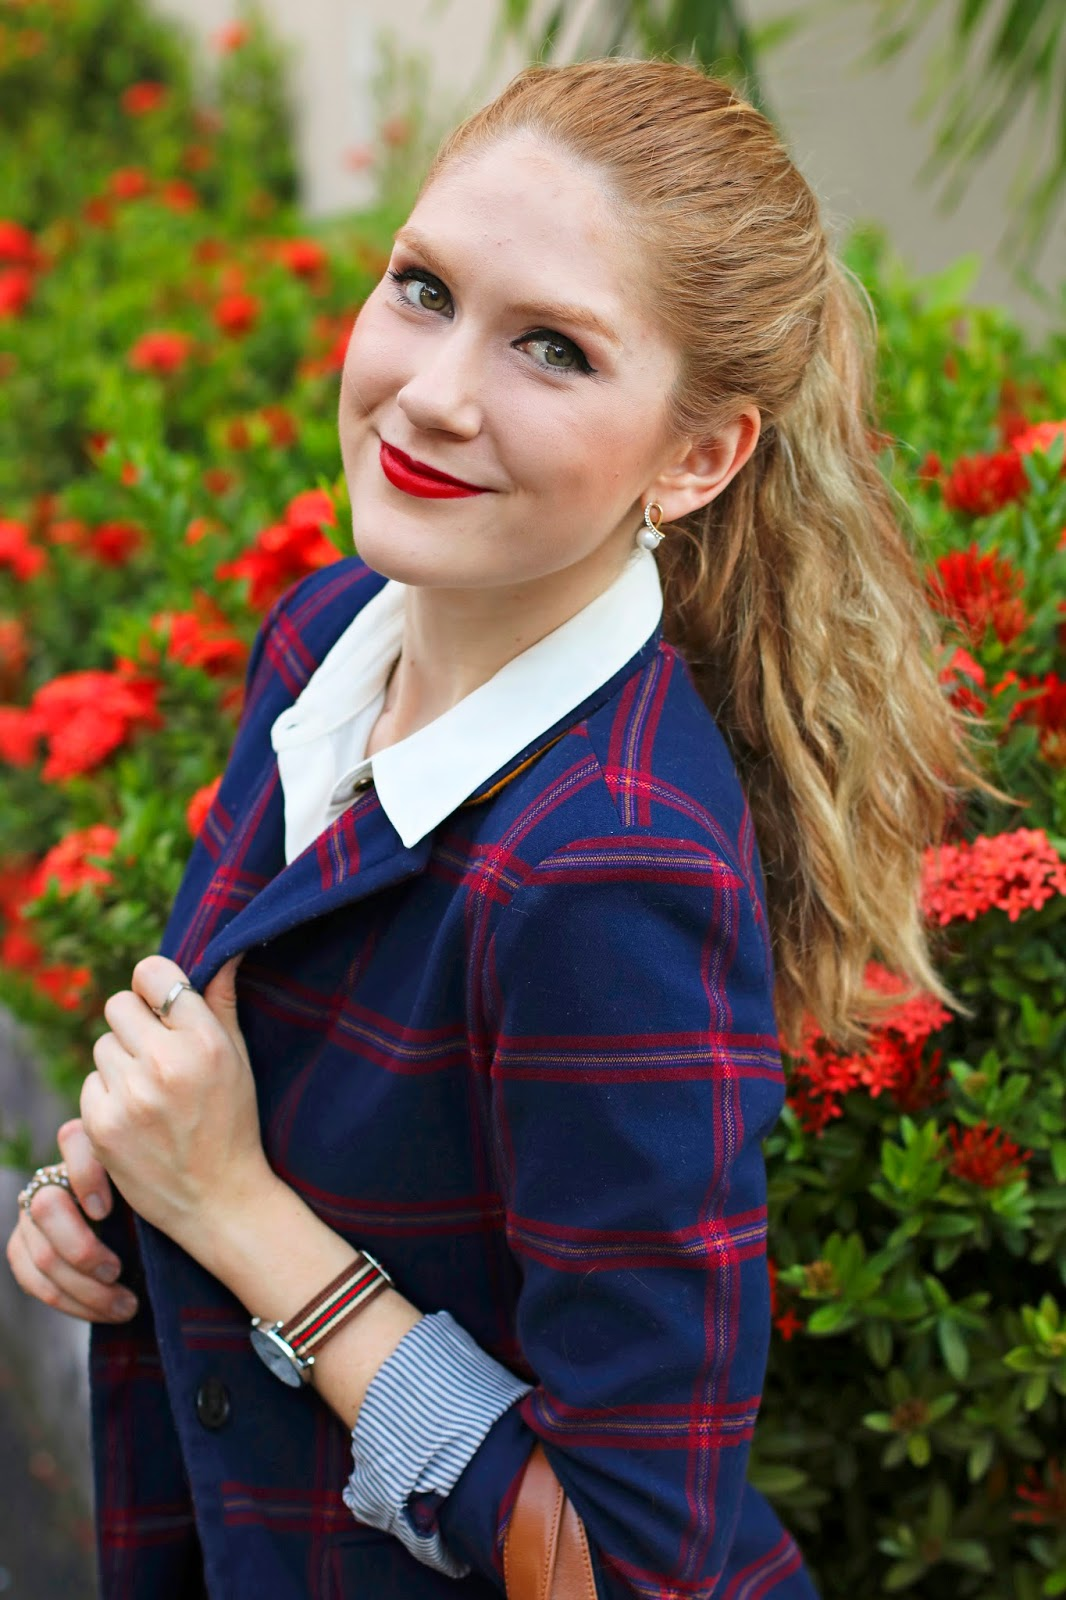 A plaid blazer is a great way to add some holiday flair to your work outfits!